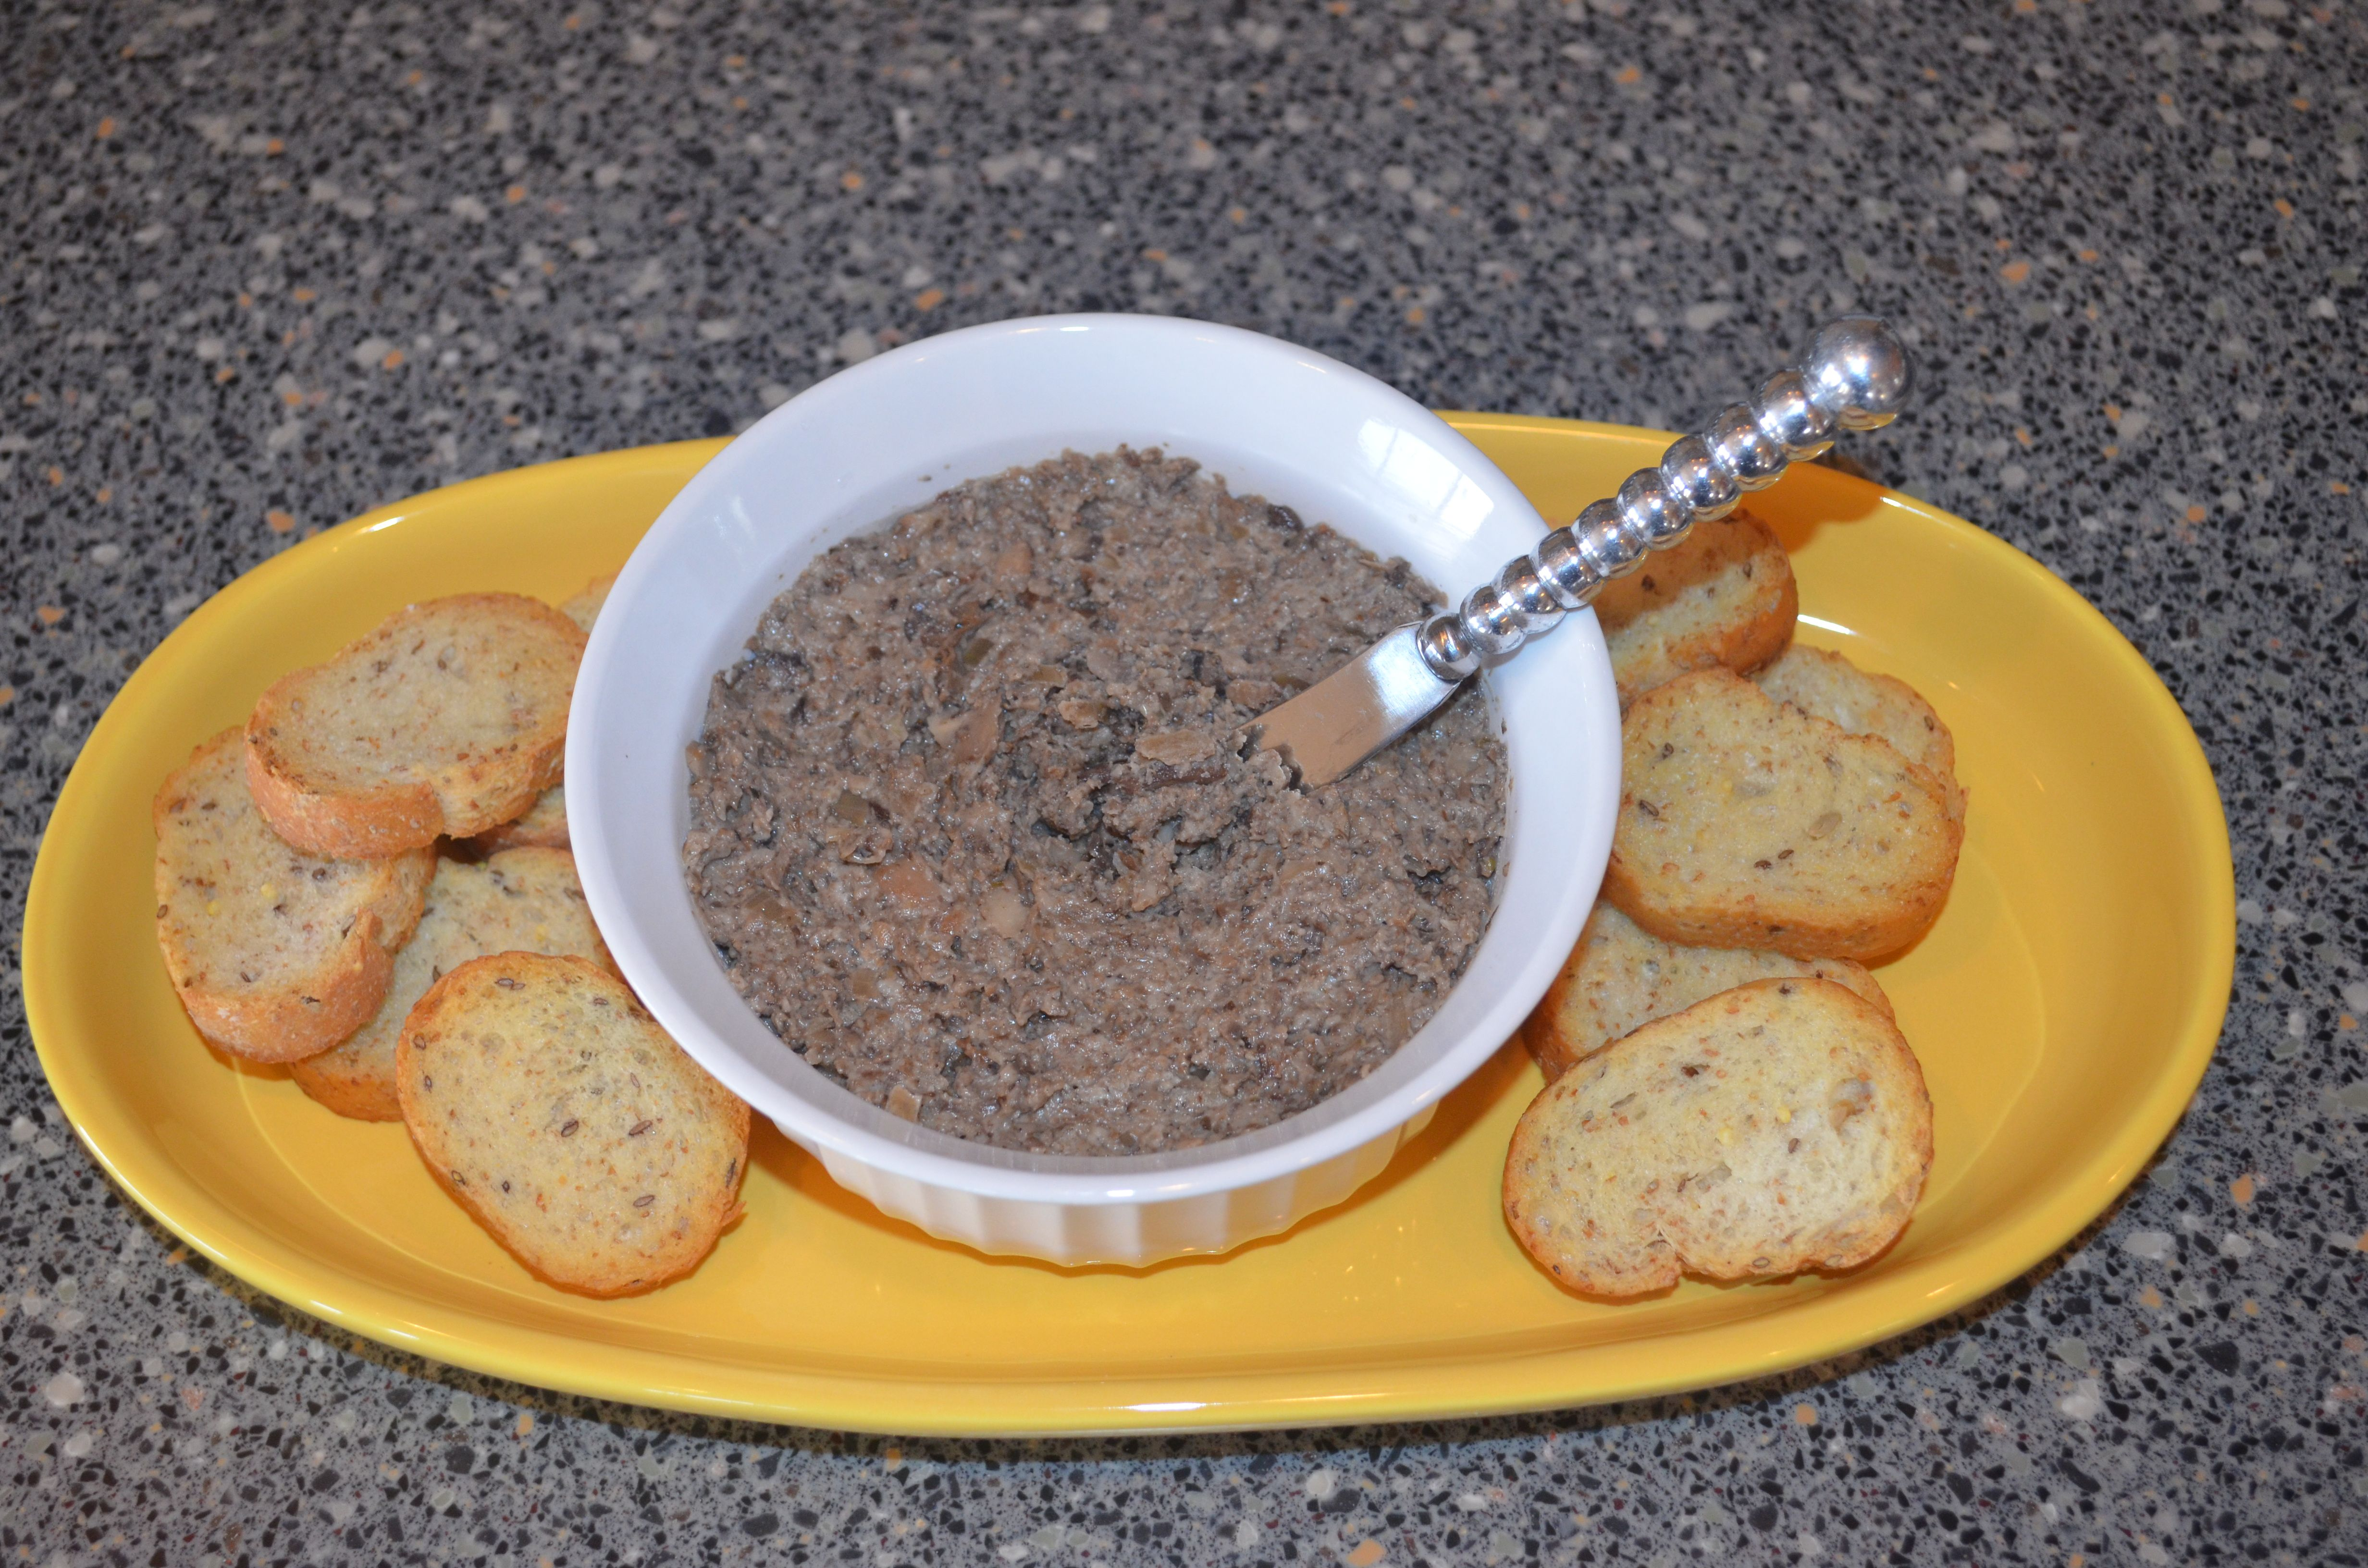 A super-easy and trés chic recipe for Brandied Wild Mushroom Pâté, from Sharing the Table at Garland's Lodge cookbook by Amanda Stine and Mary Garland